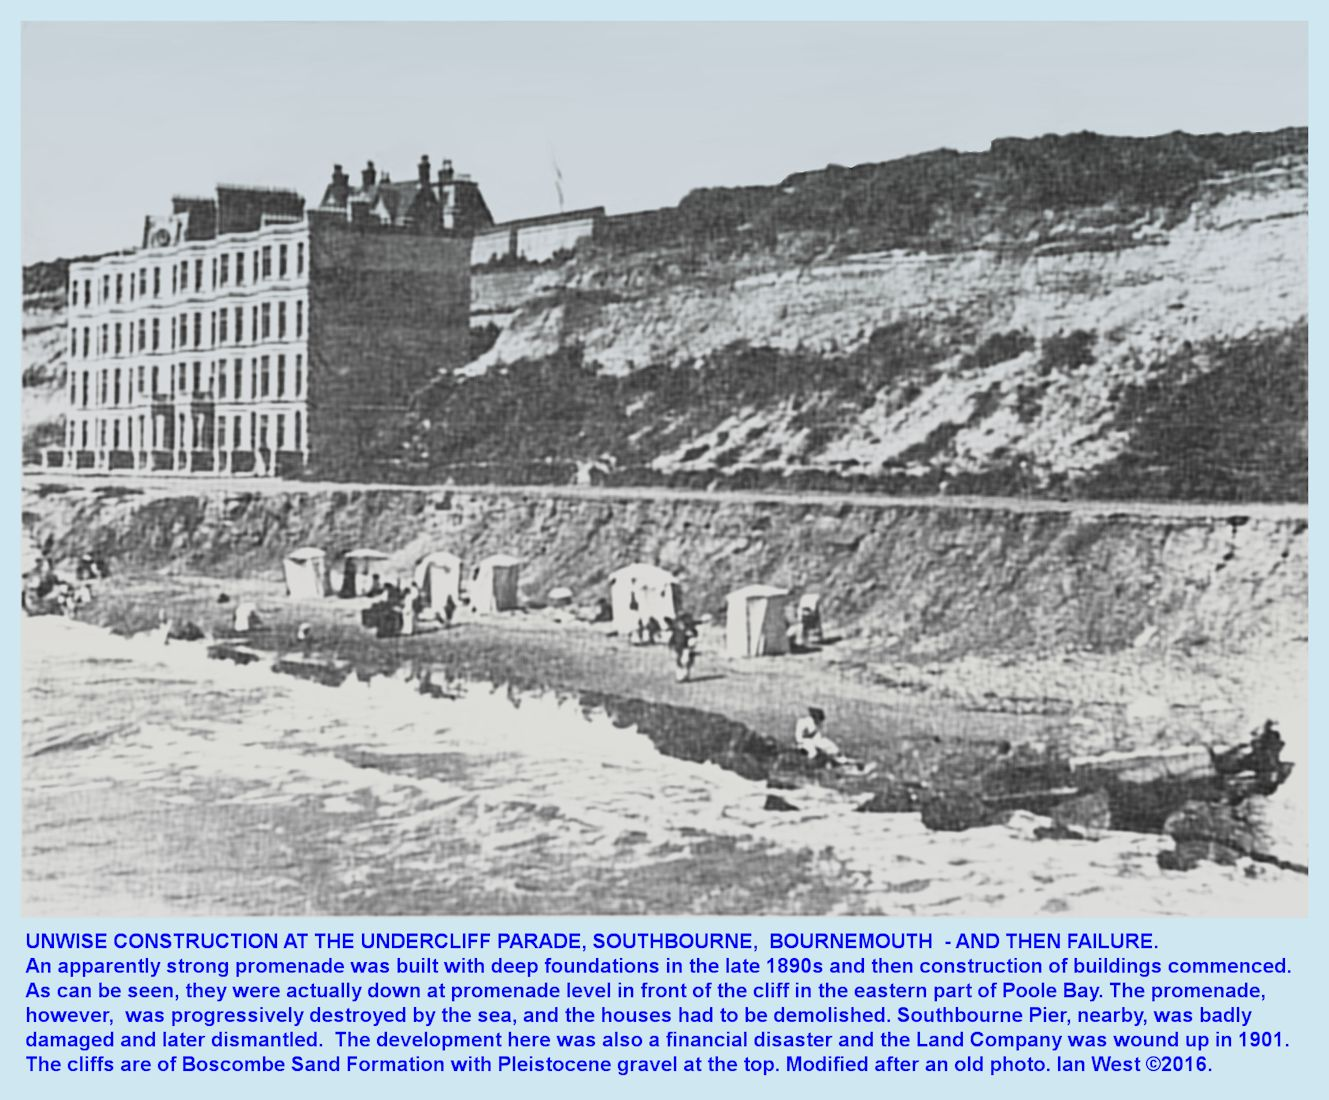 At the old Southbourne Esplanade or Promenade in about 1899, houses were unwisely built at the foot of the cliff, at the level of the Promenade, and even before the intended row of buildings was completed the sea wall began to collapse under storm waves